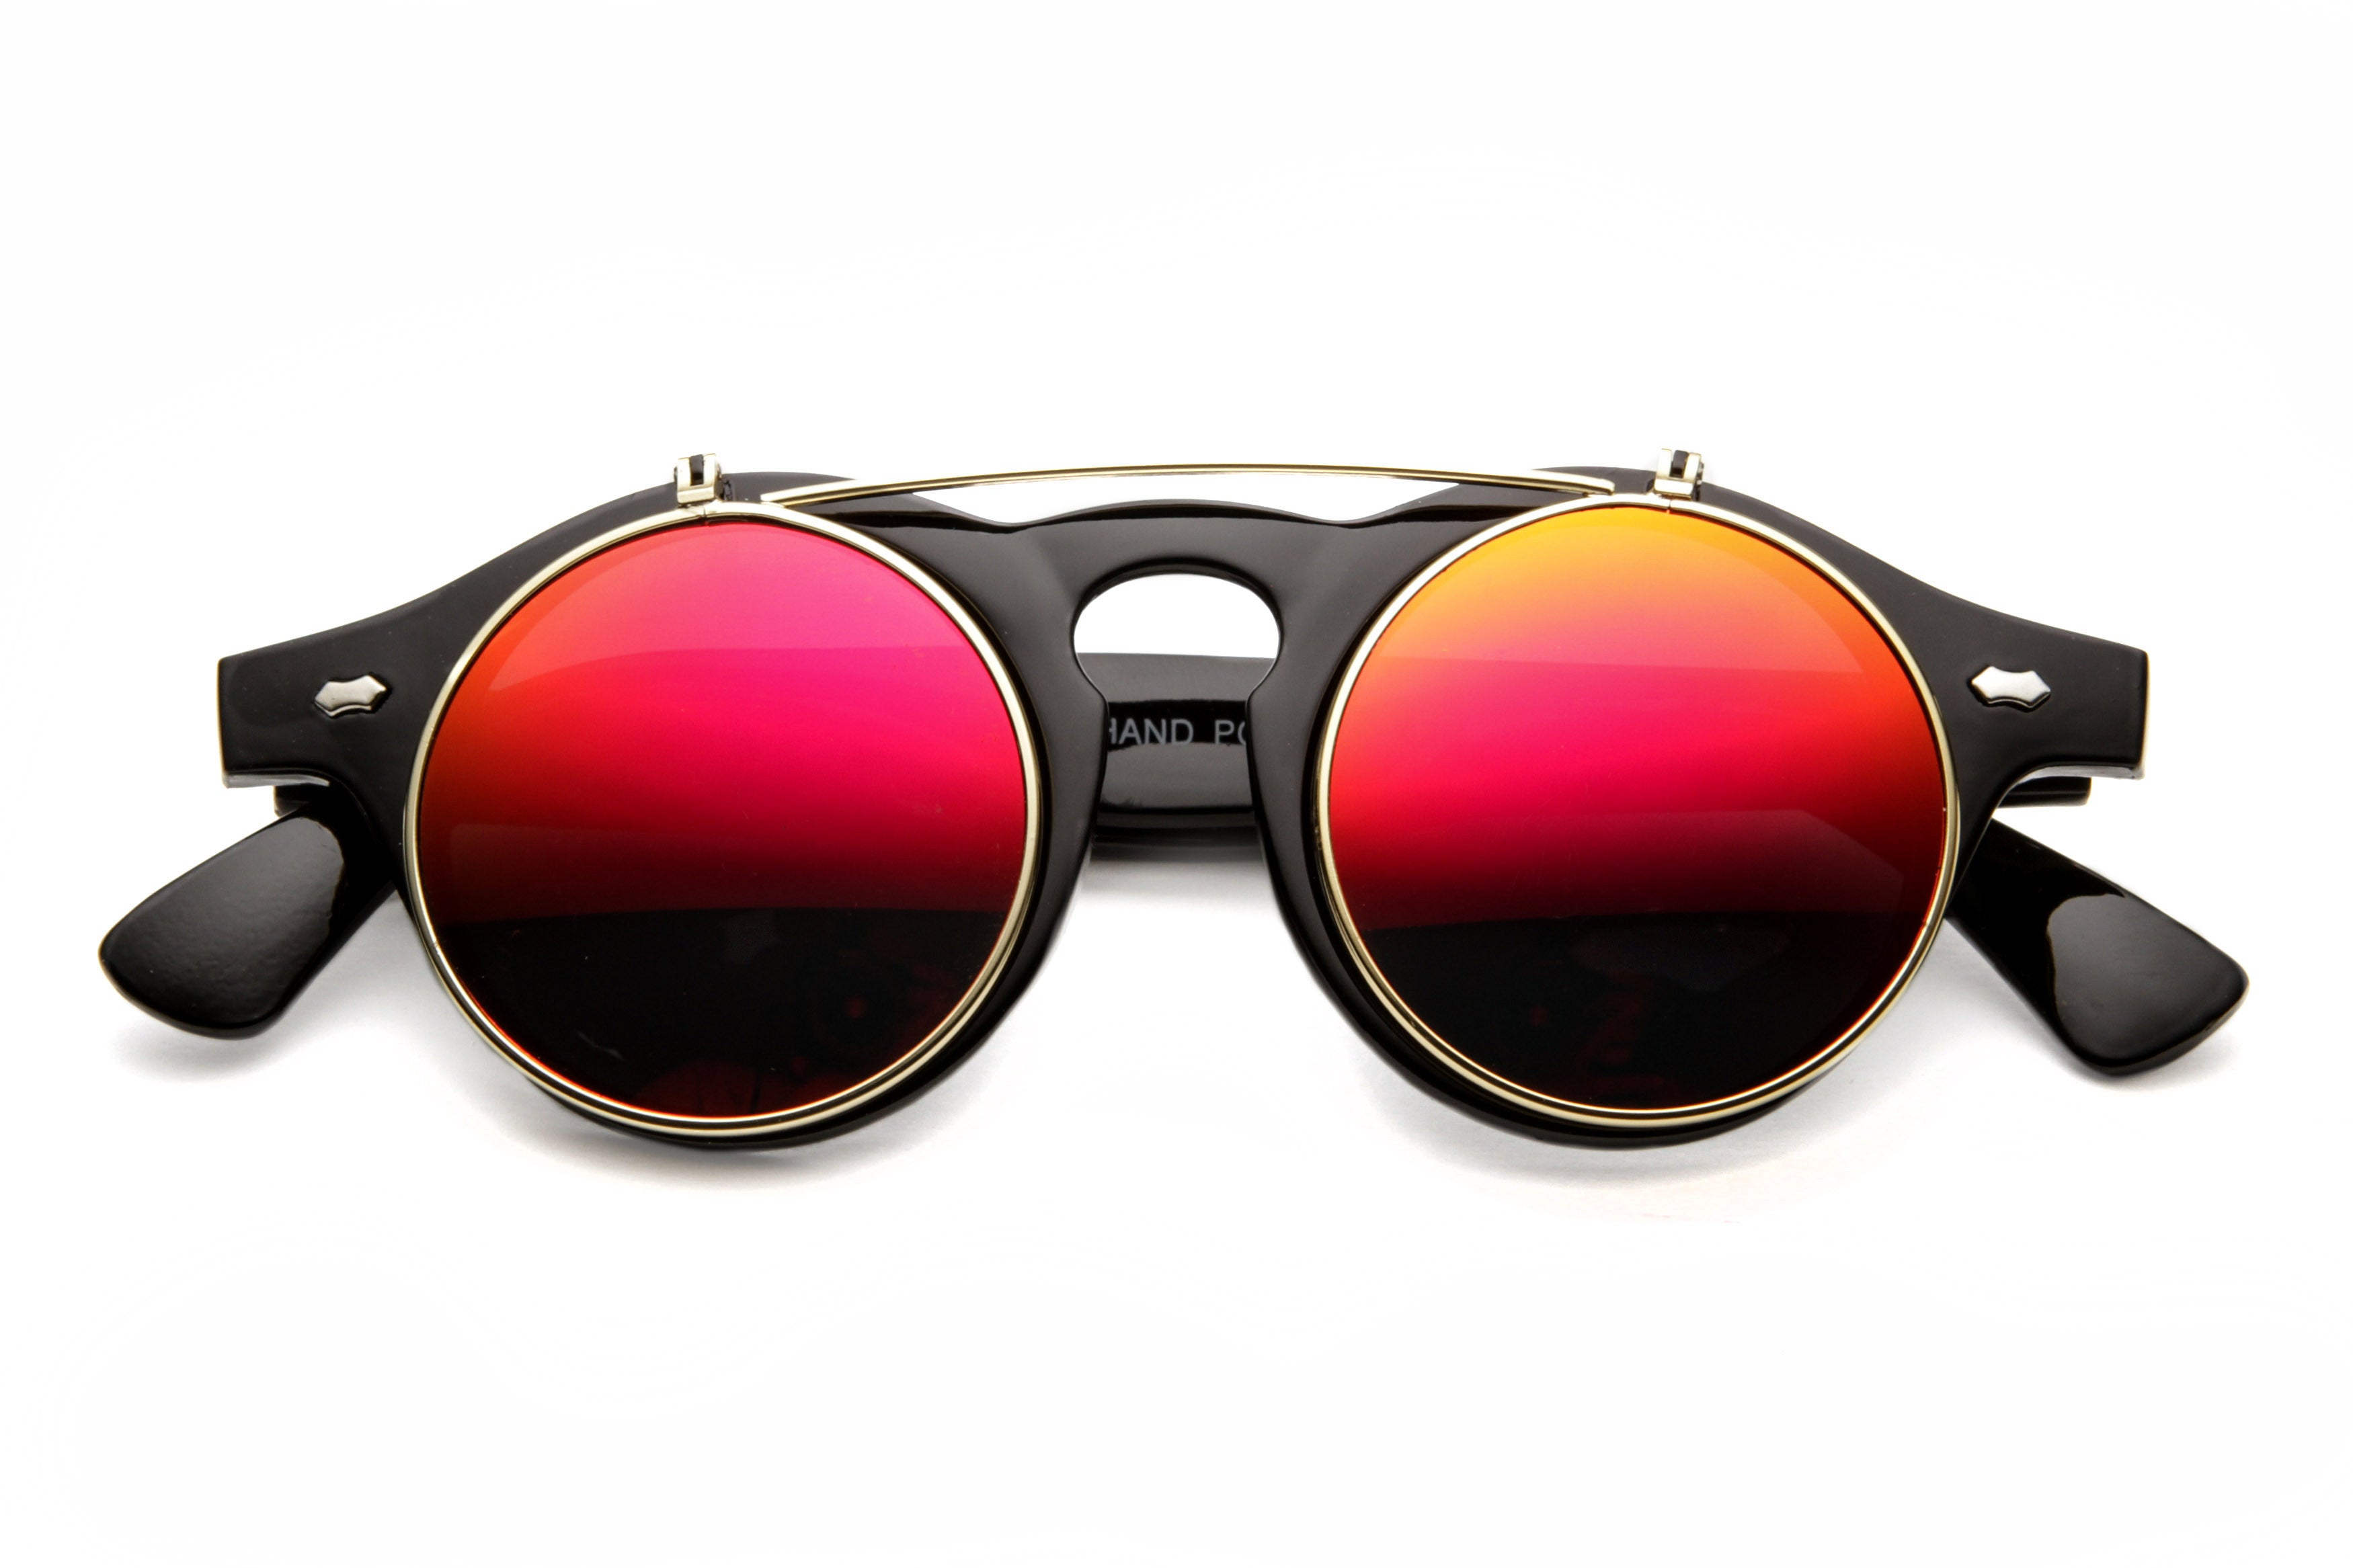 Inventor Round Vintage Clear Lens Flip Up Sunglasses